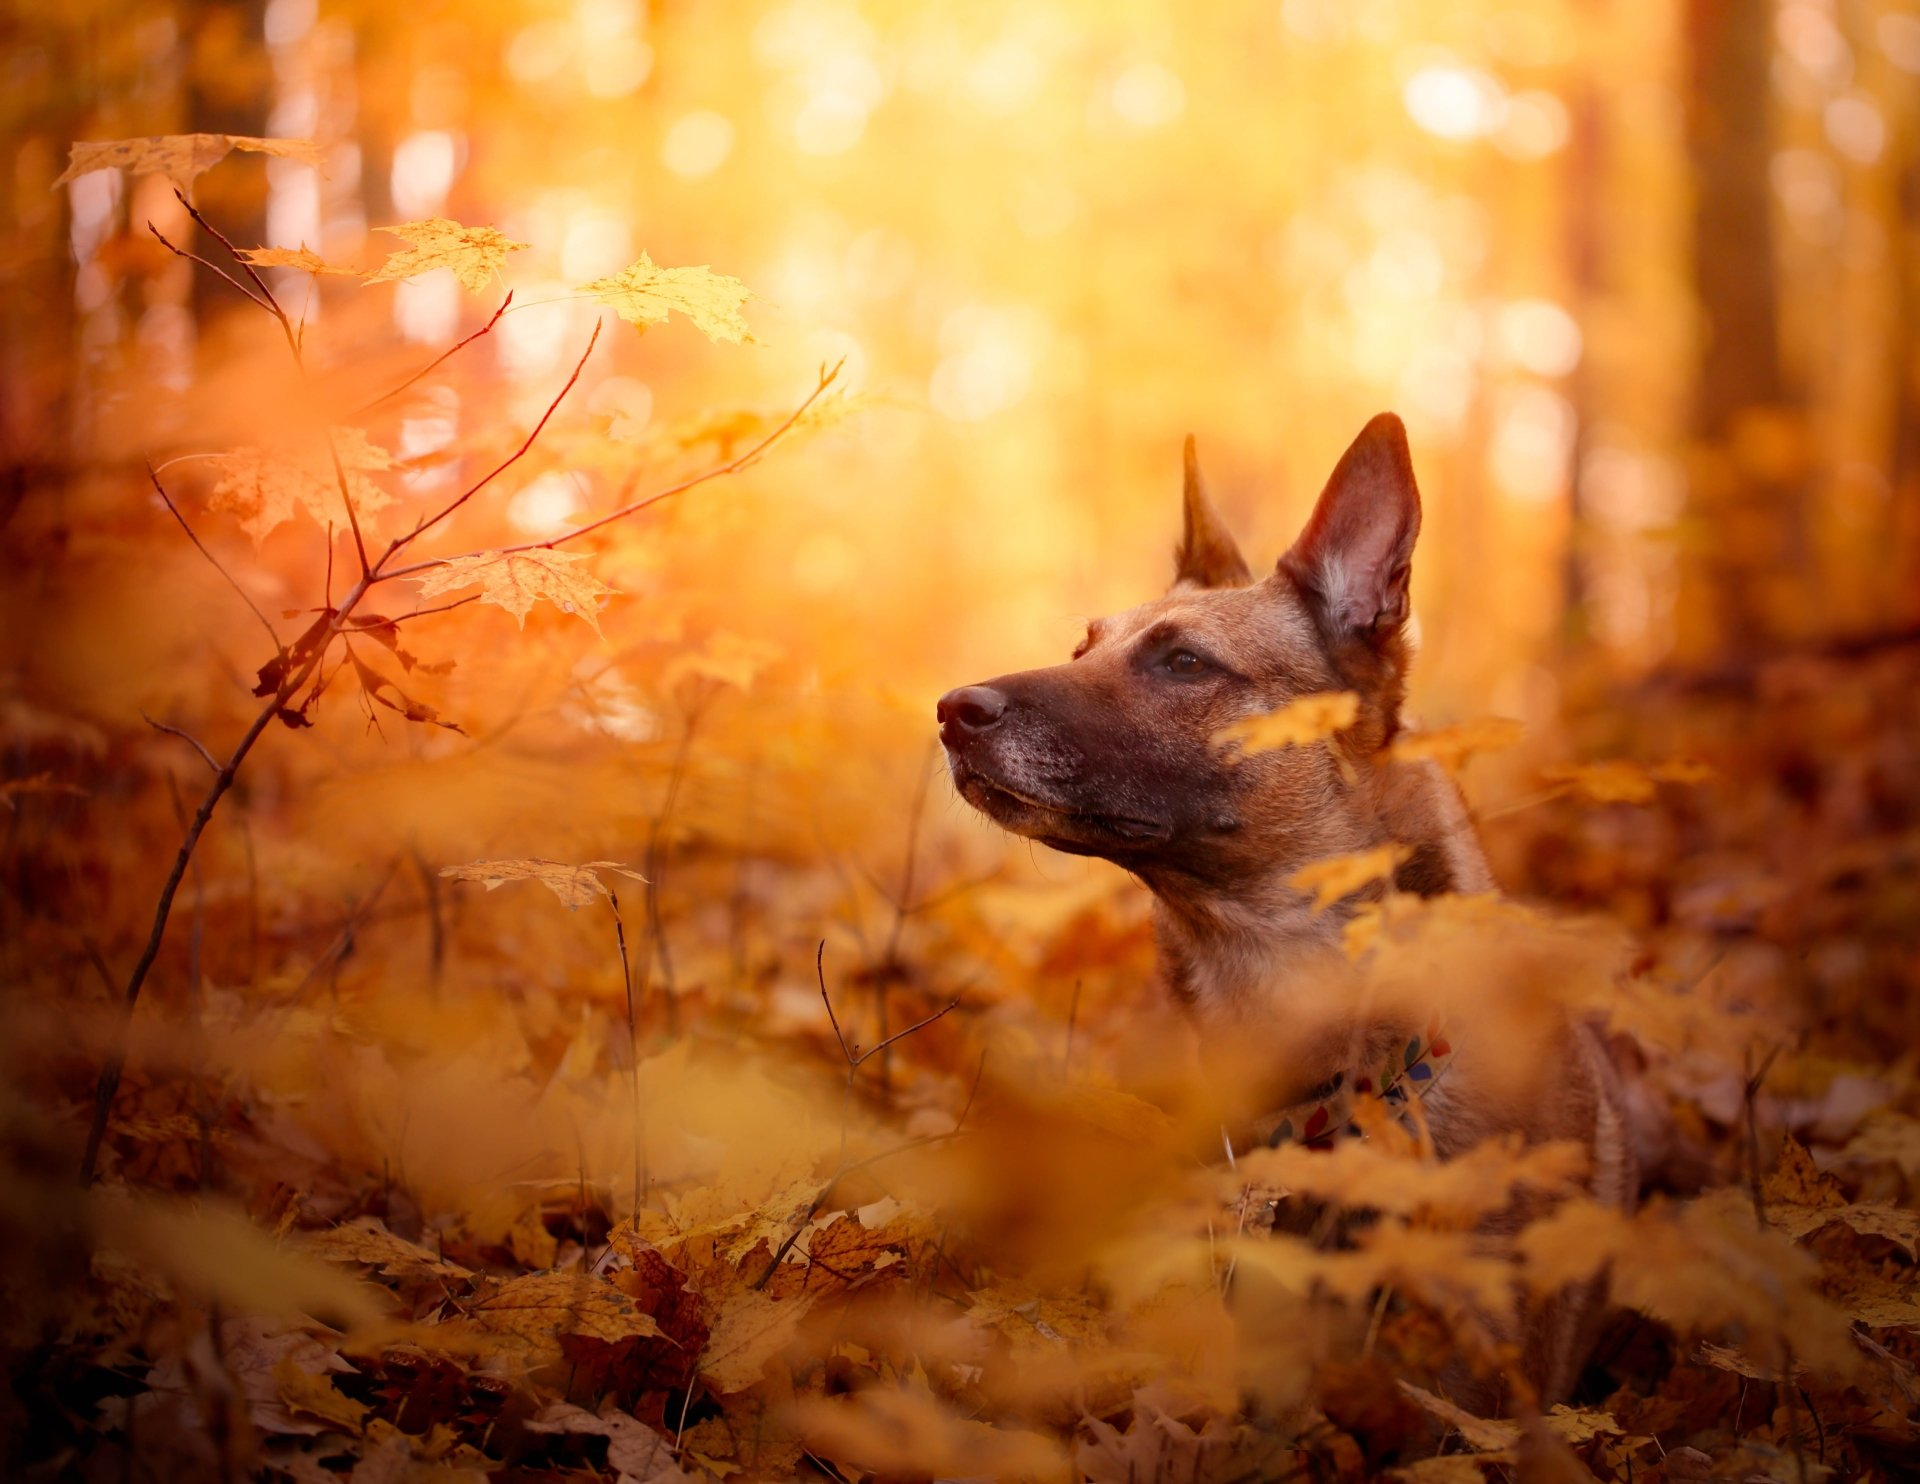 Iphone 5 Fall Wallpaper Berger Belge Malinois 4k Ultra Fond D 233 Cran Hd Arri 232 Re